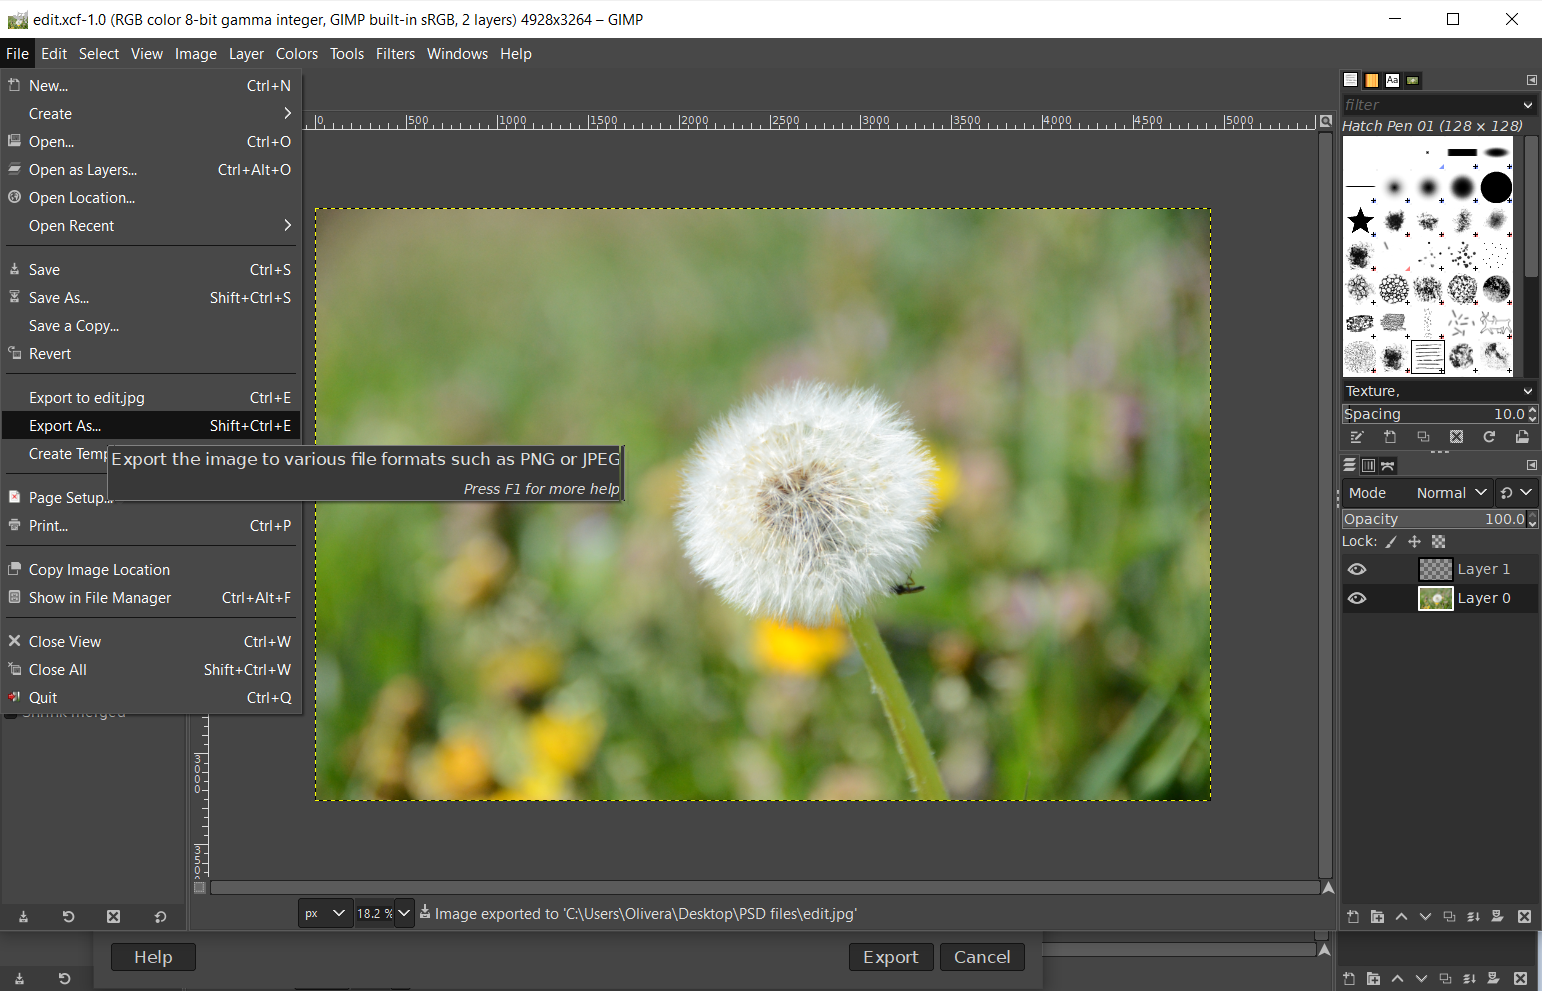 How to open an XCF file in Photoshop by exporting to PSD in GIMP